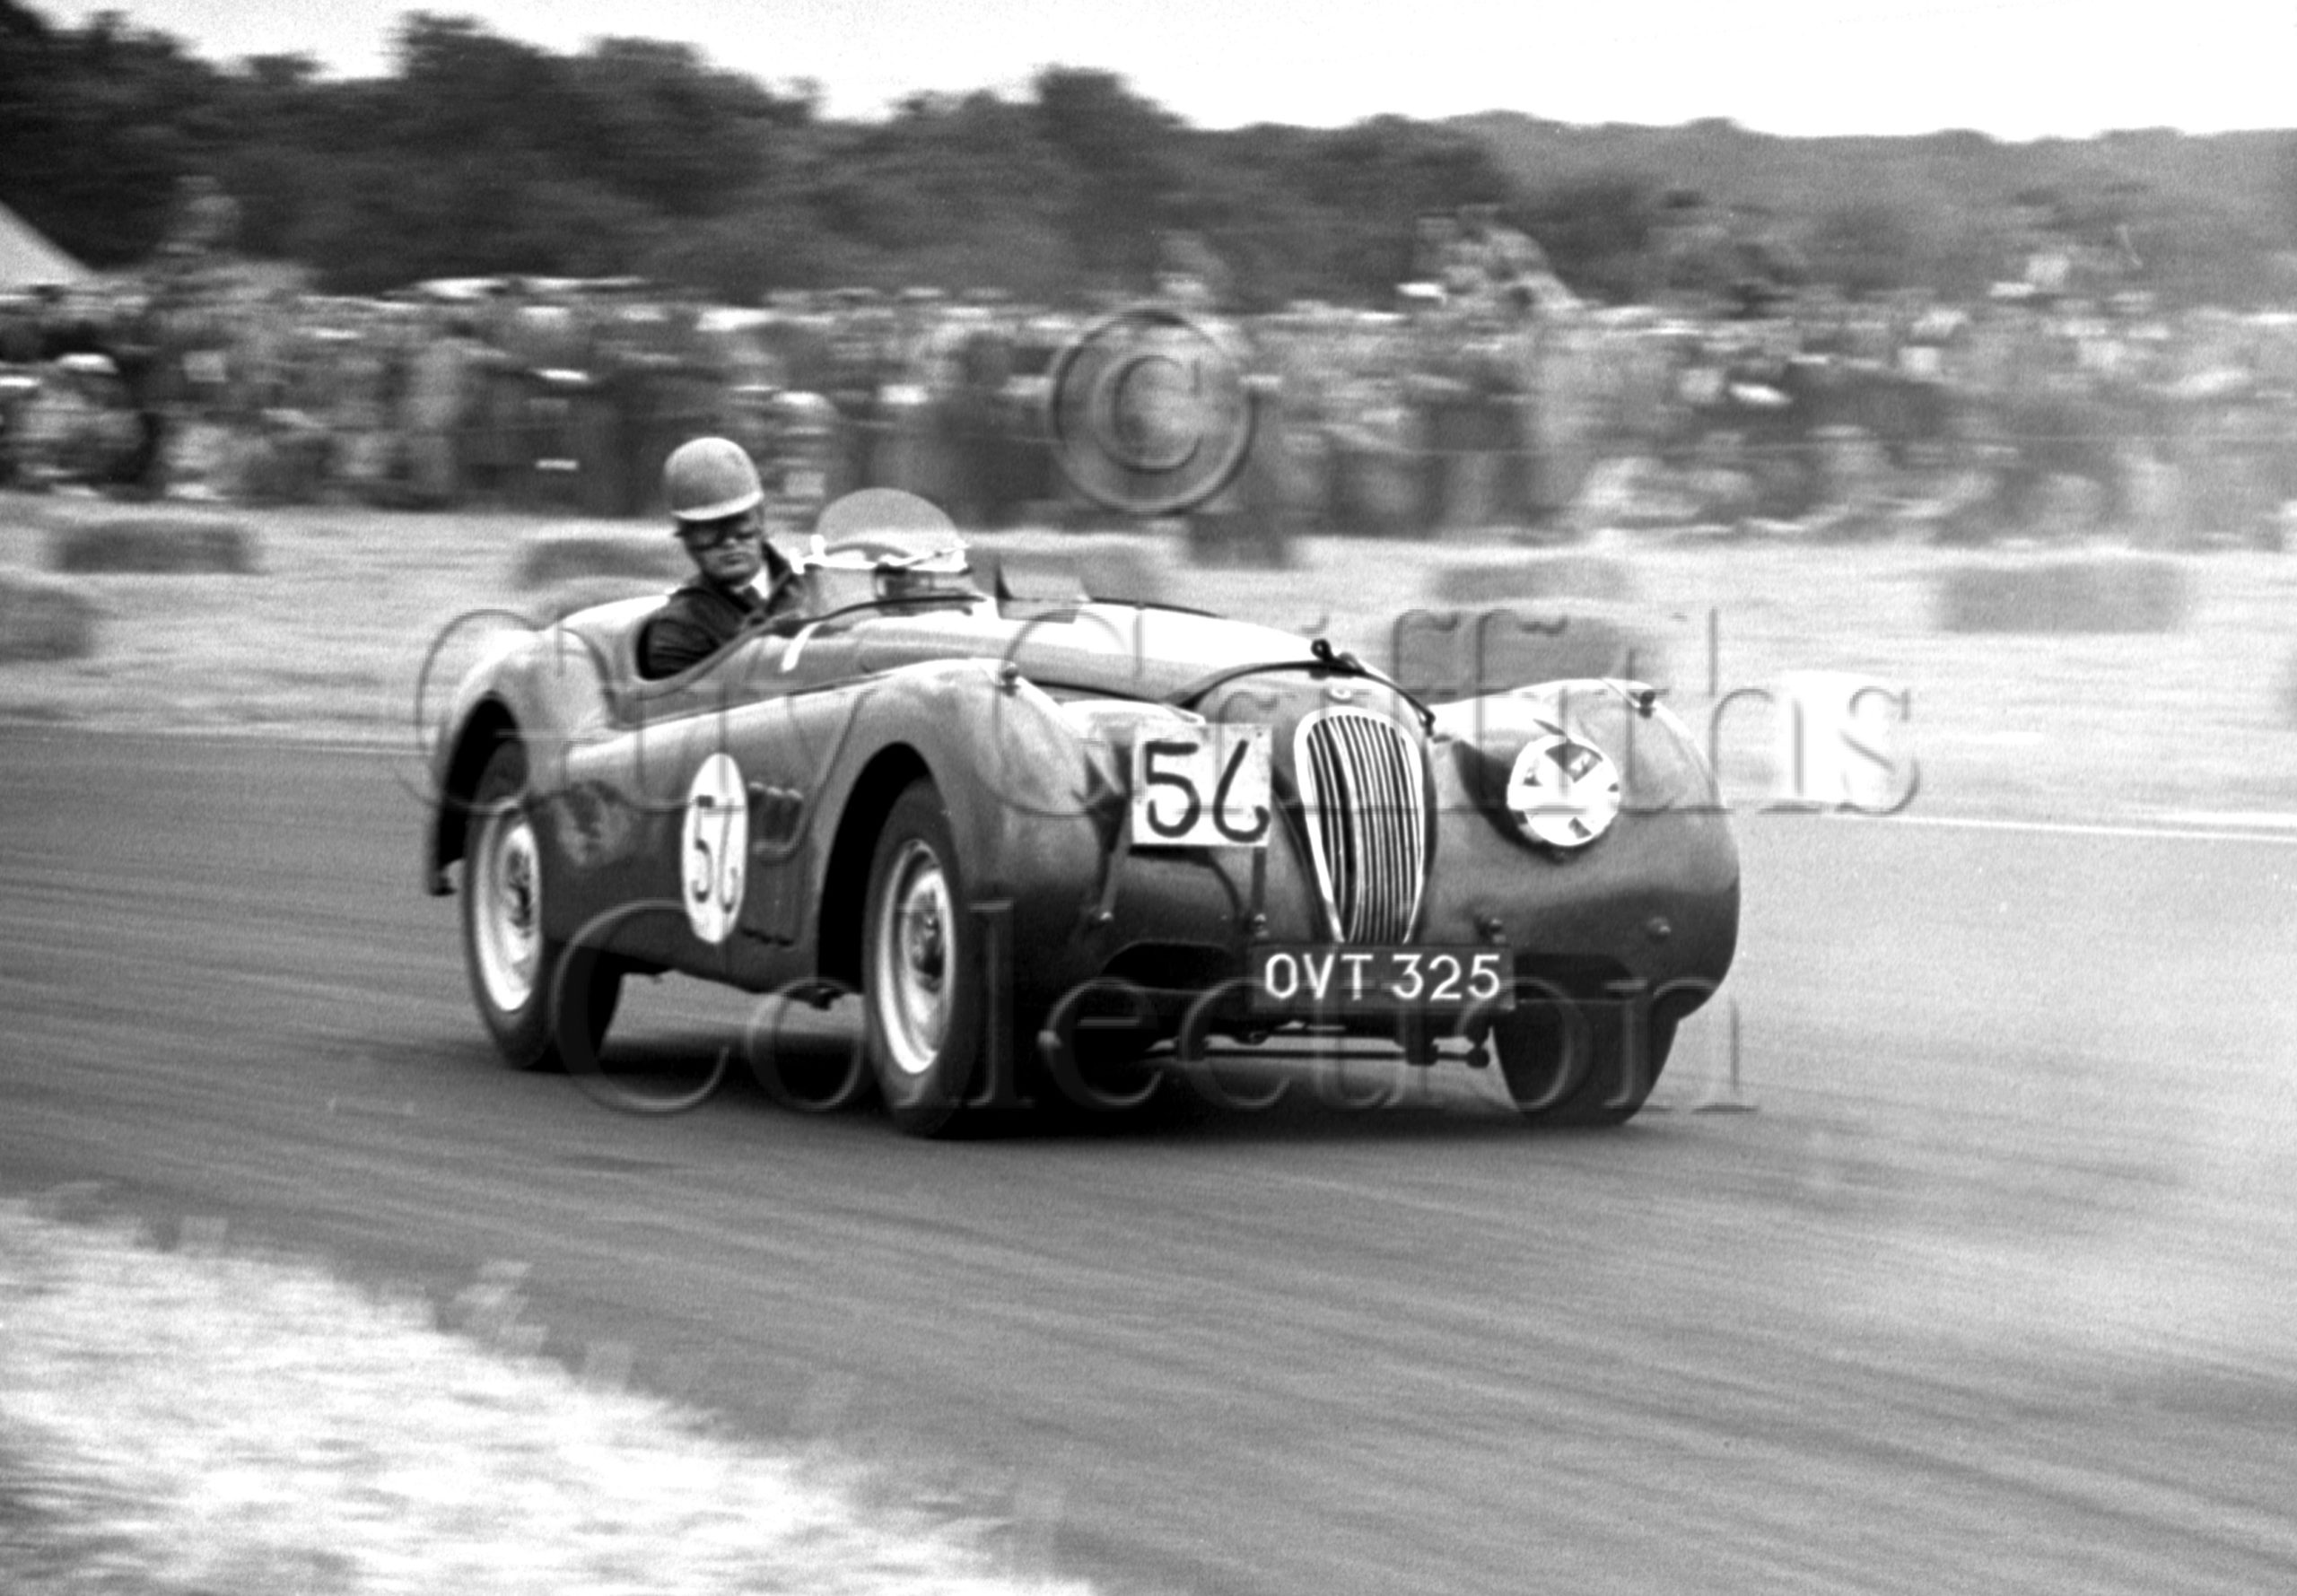 56-512–J-Swift–Jaguar-XK-120-OVT-325–Boreham–21-06-1952.jpg - Guy Griffiths Collection